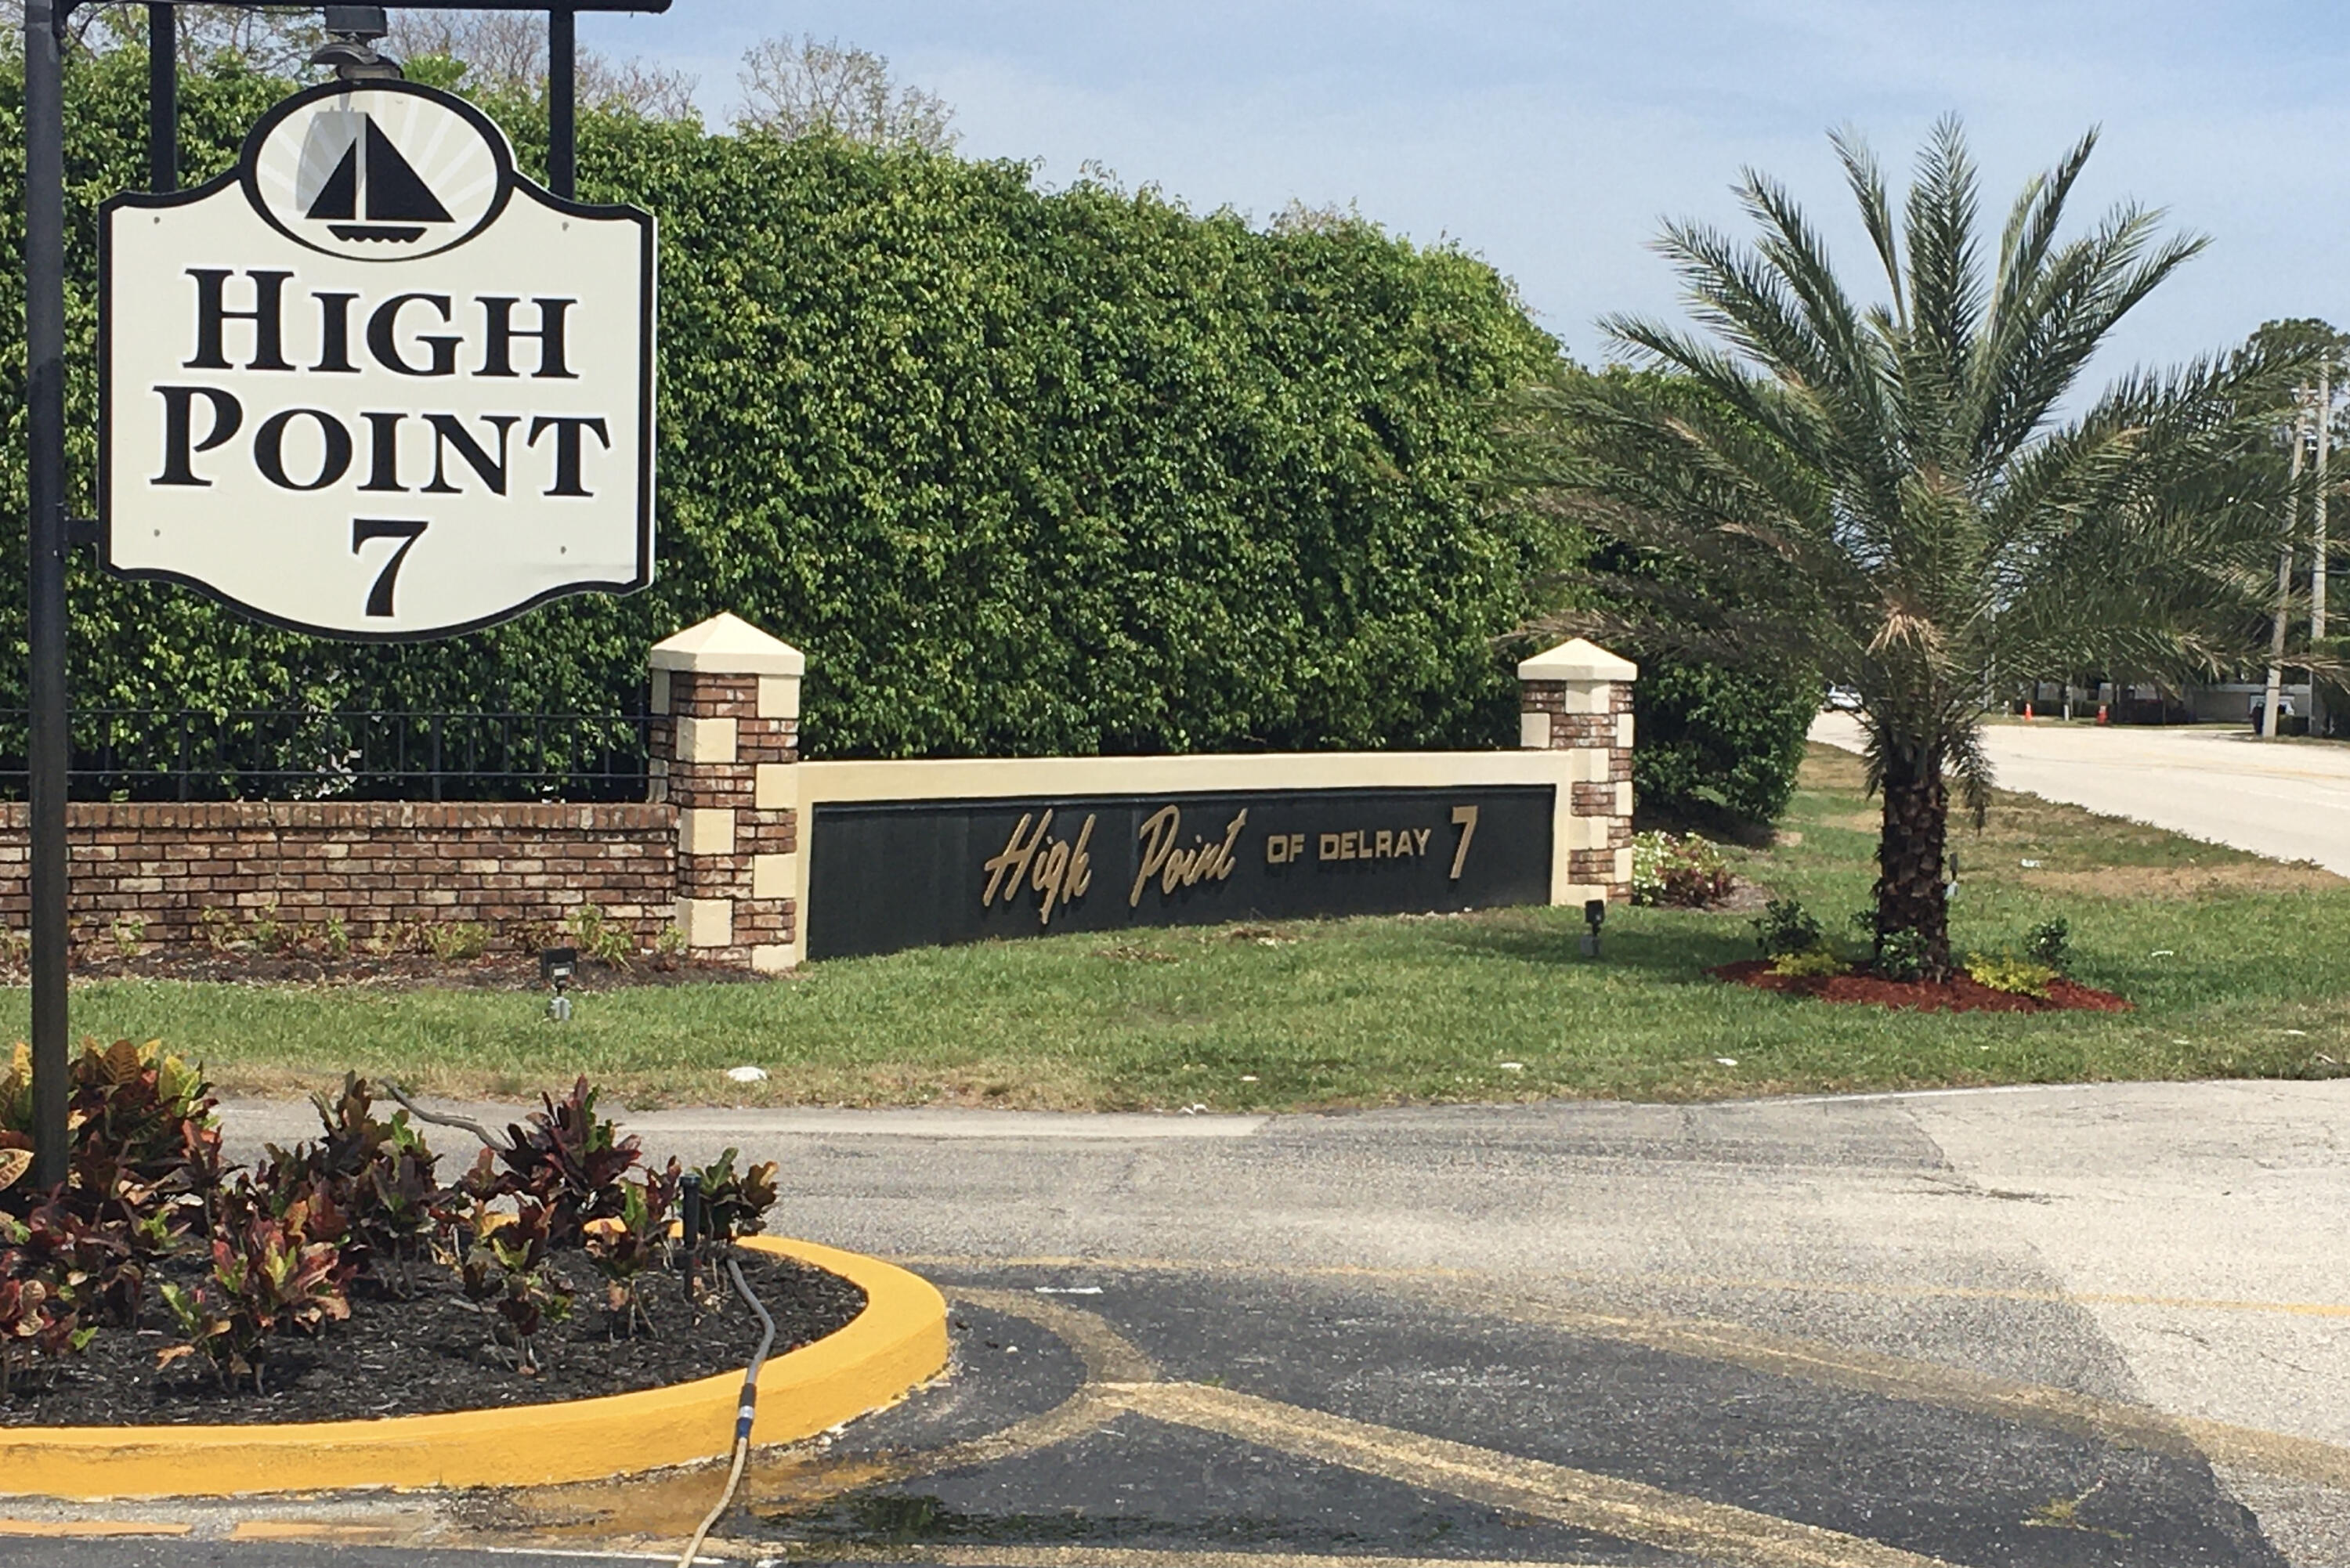 Main Entrance to HIGH POINT 7